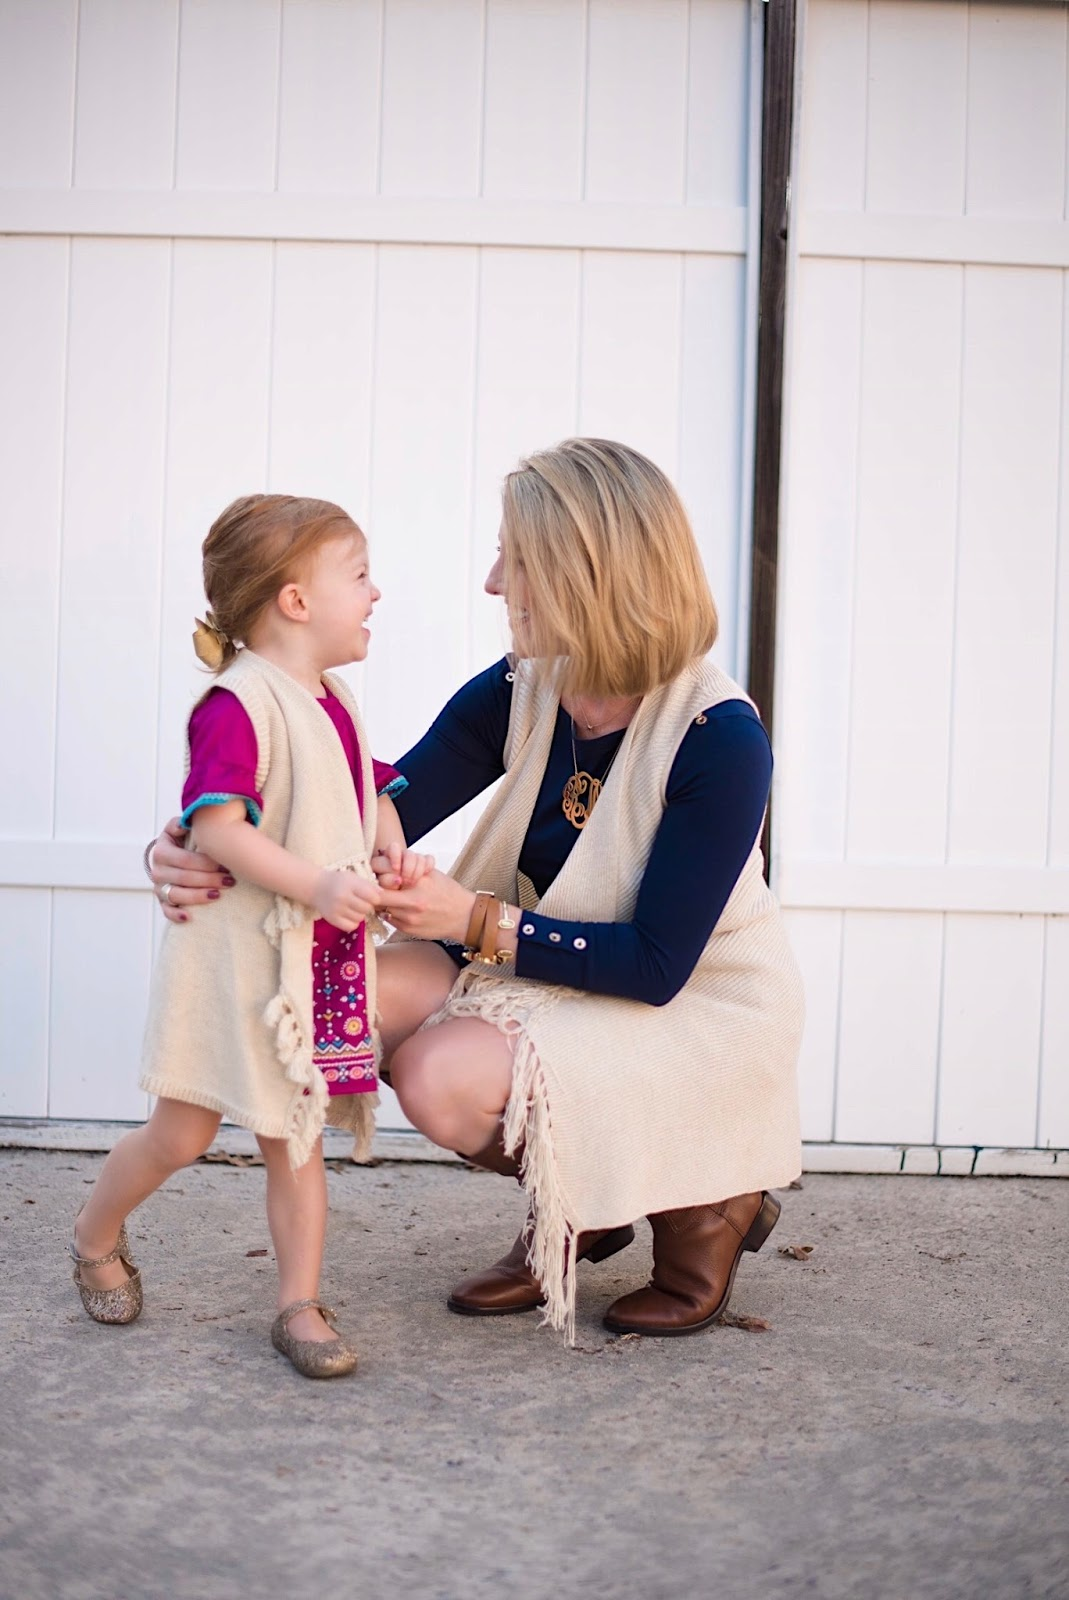 Mommy & Me Matching Lilly Pulitzer Vests - Something Delightful Blog